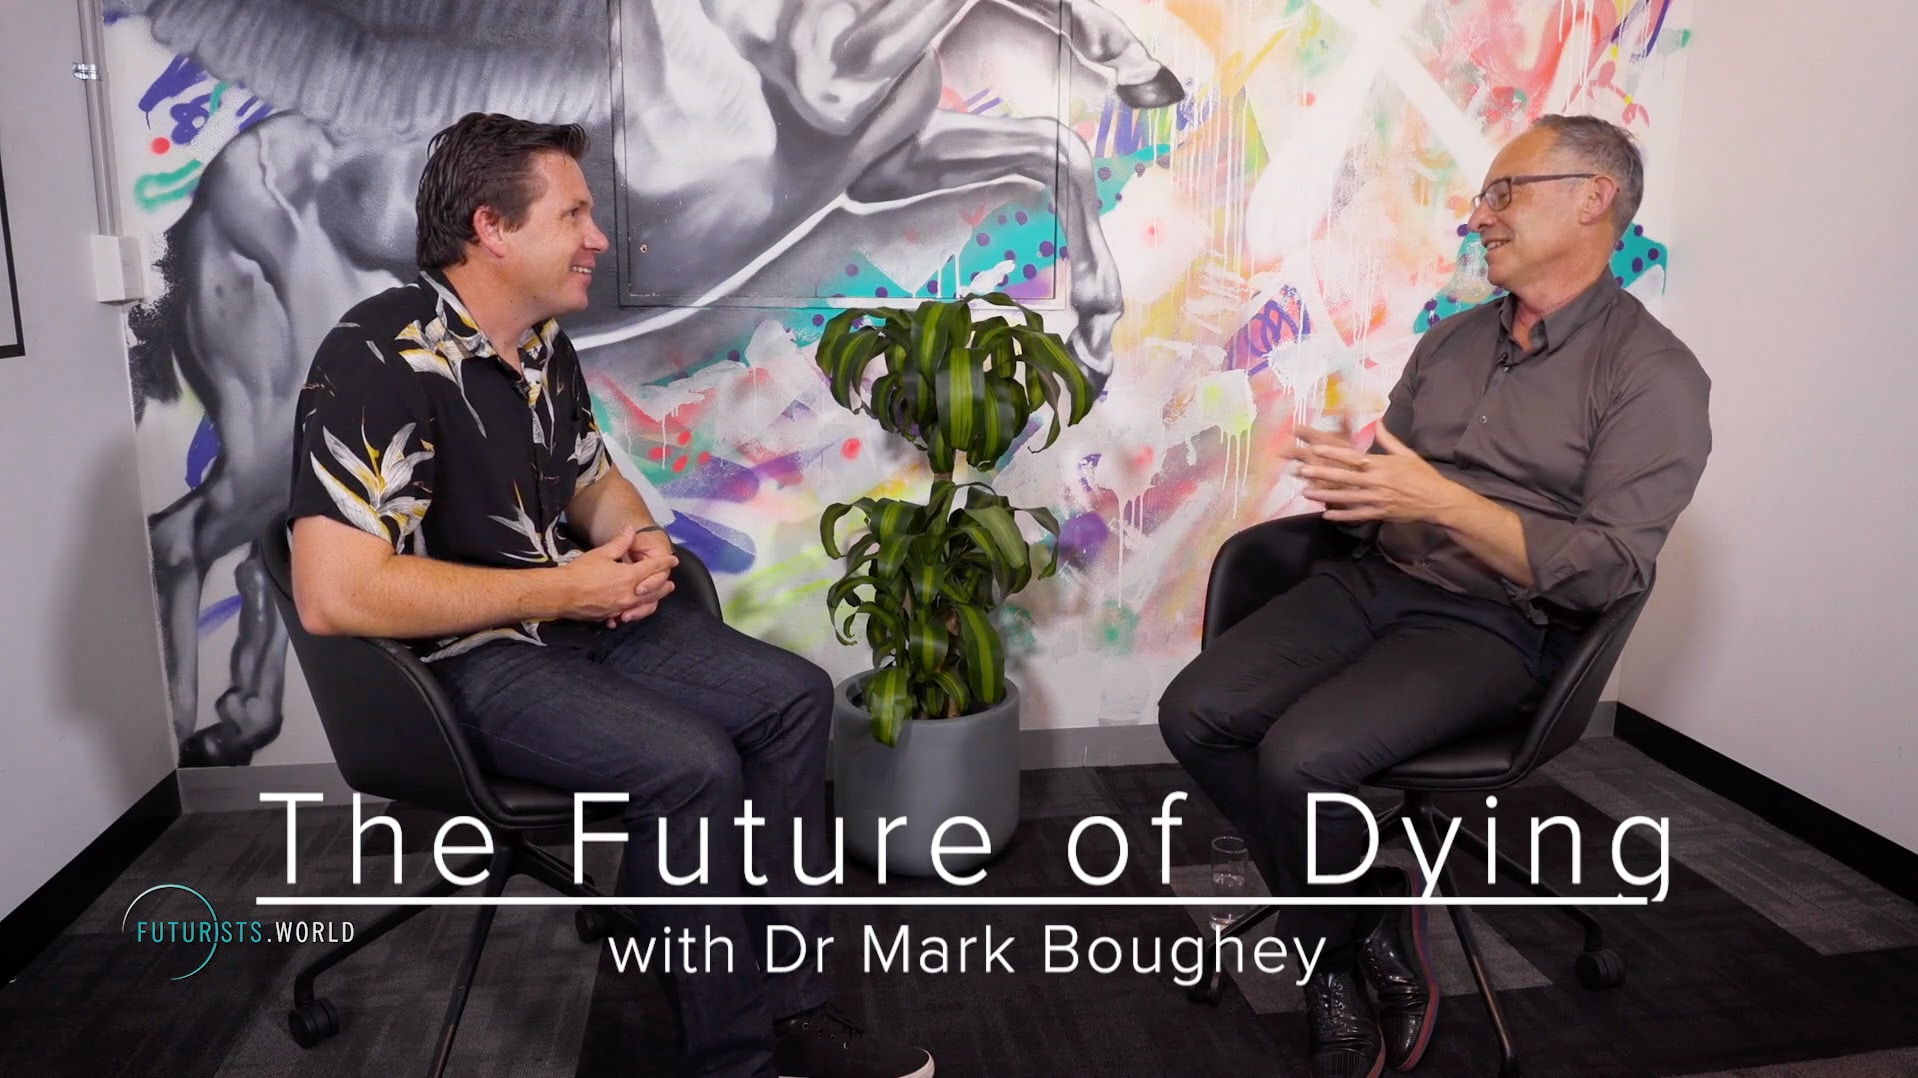 Australian Palliative Care leader Dr Mark Boughey connected with Mike Hill to shine a light on The Future of Dying.